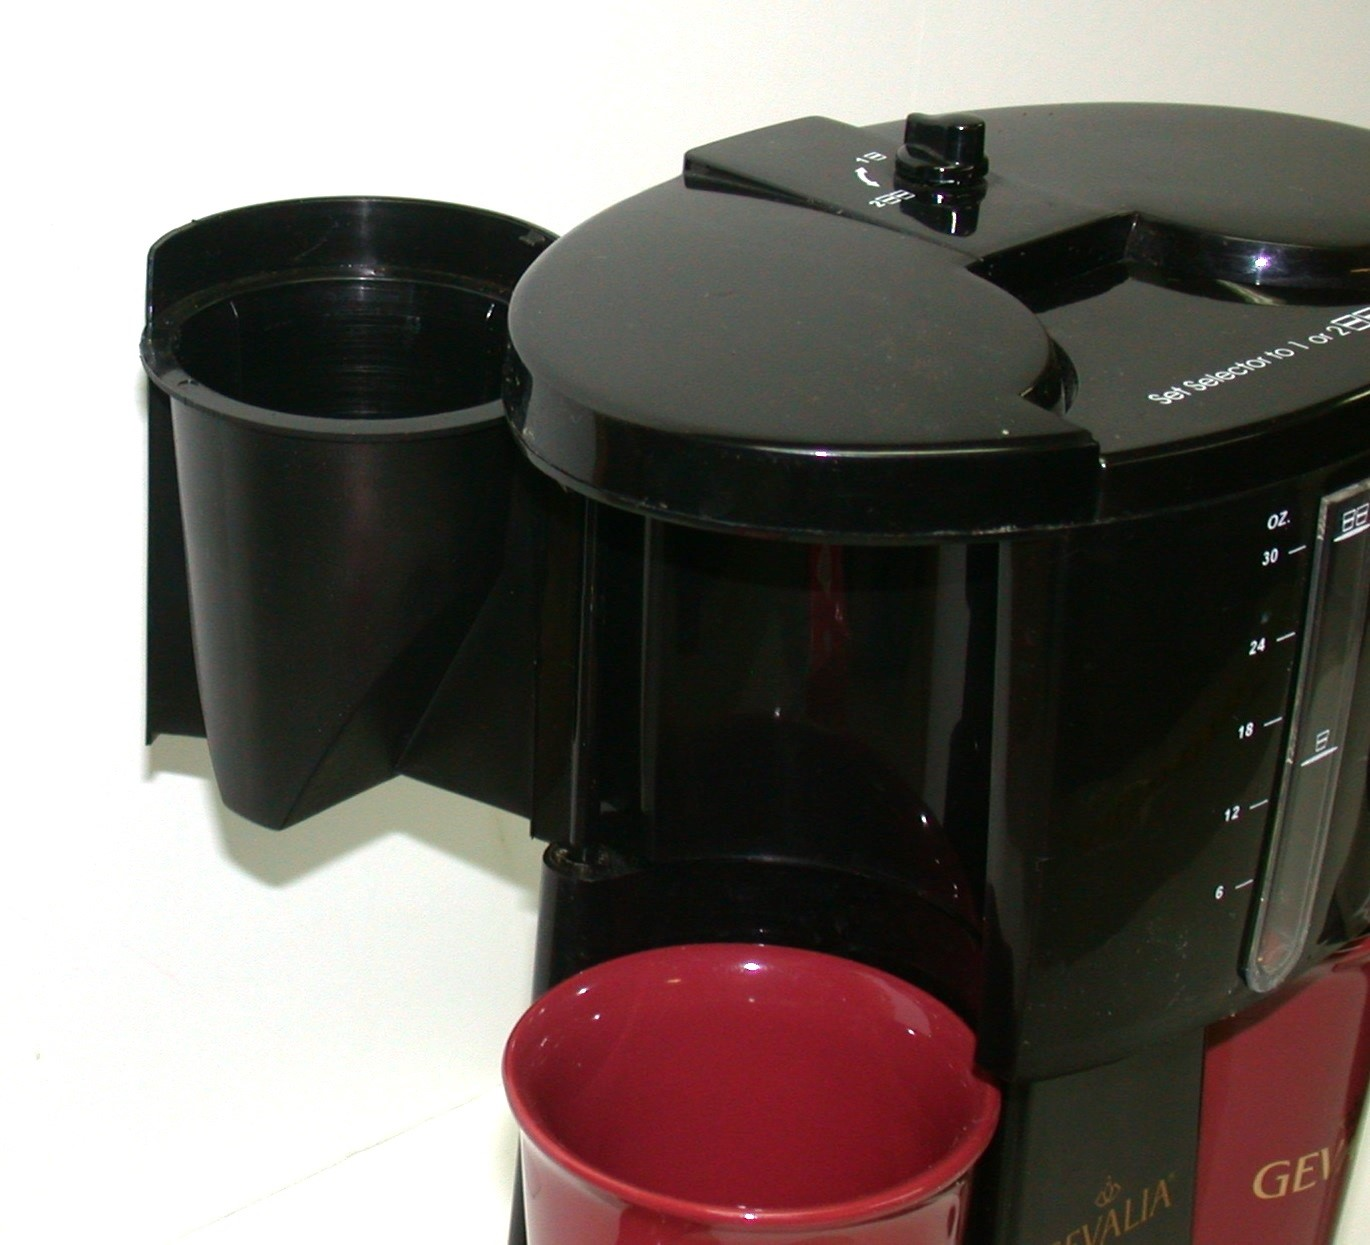 Gevalia Coffee Maker For Two Instructions : Gevalia Coffee for Two 85188 14-Cups Coffee Maker eBay